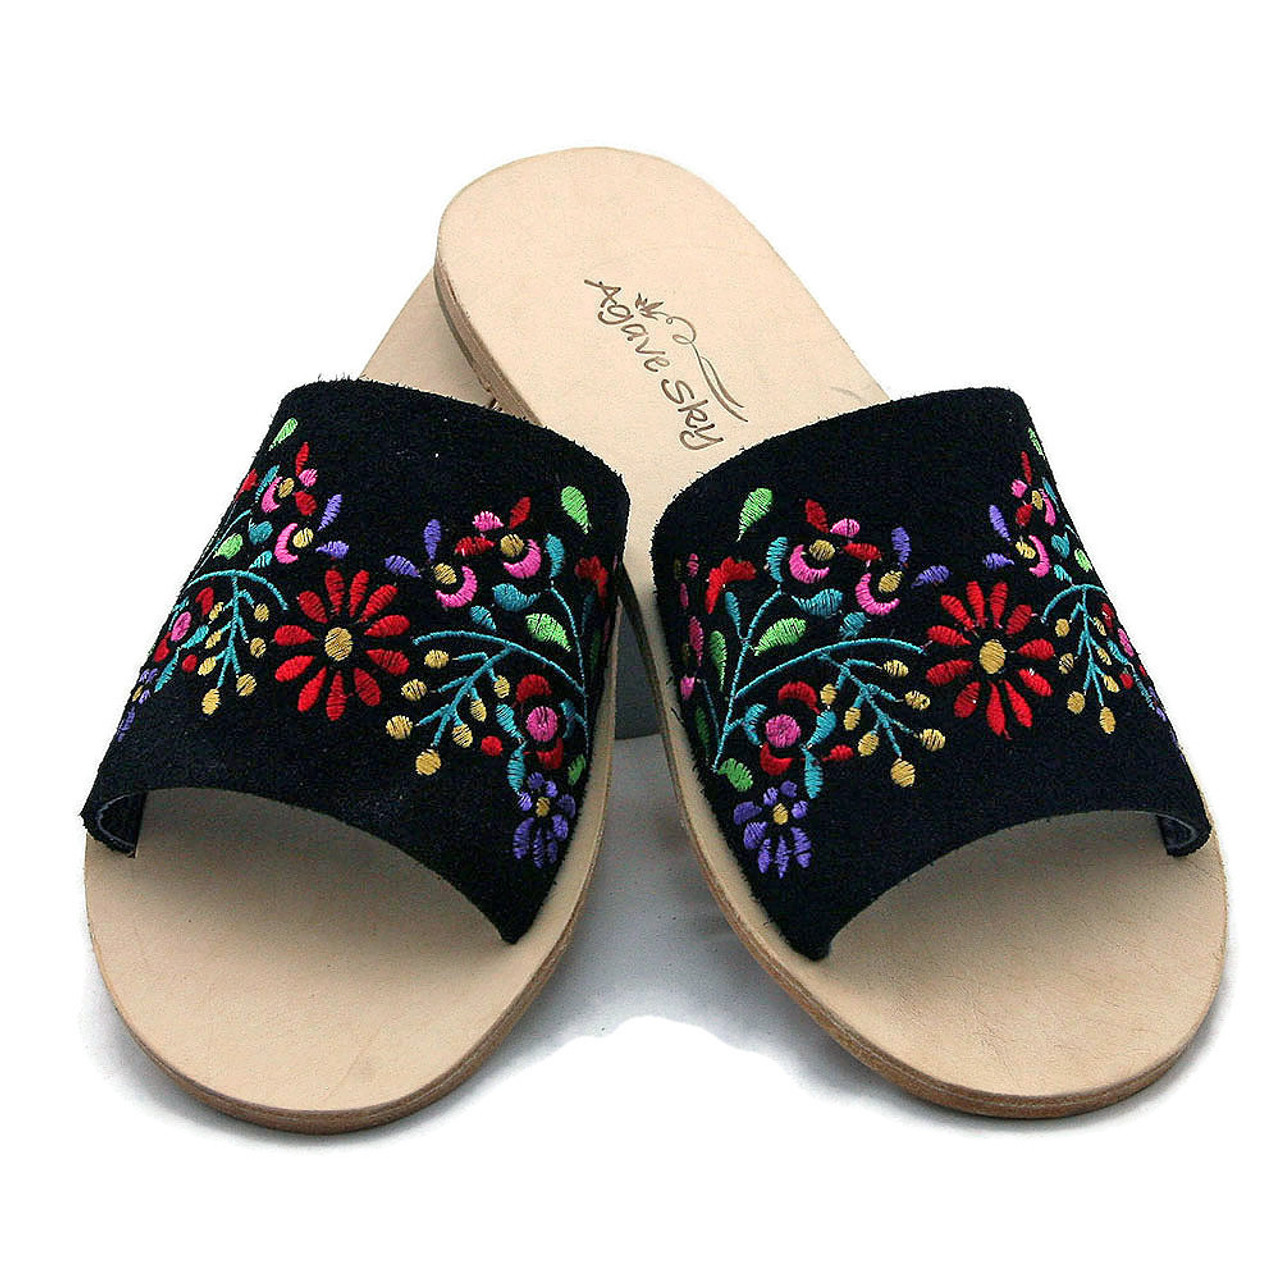 great fit run shoes really comfortable Embroidered Flats - Floral Design